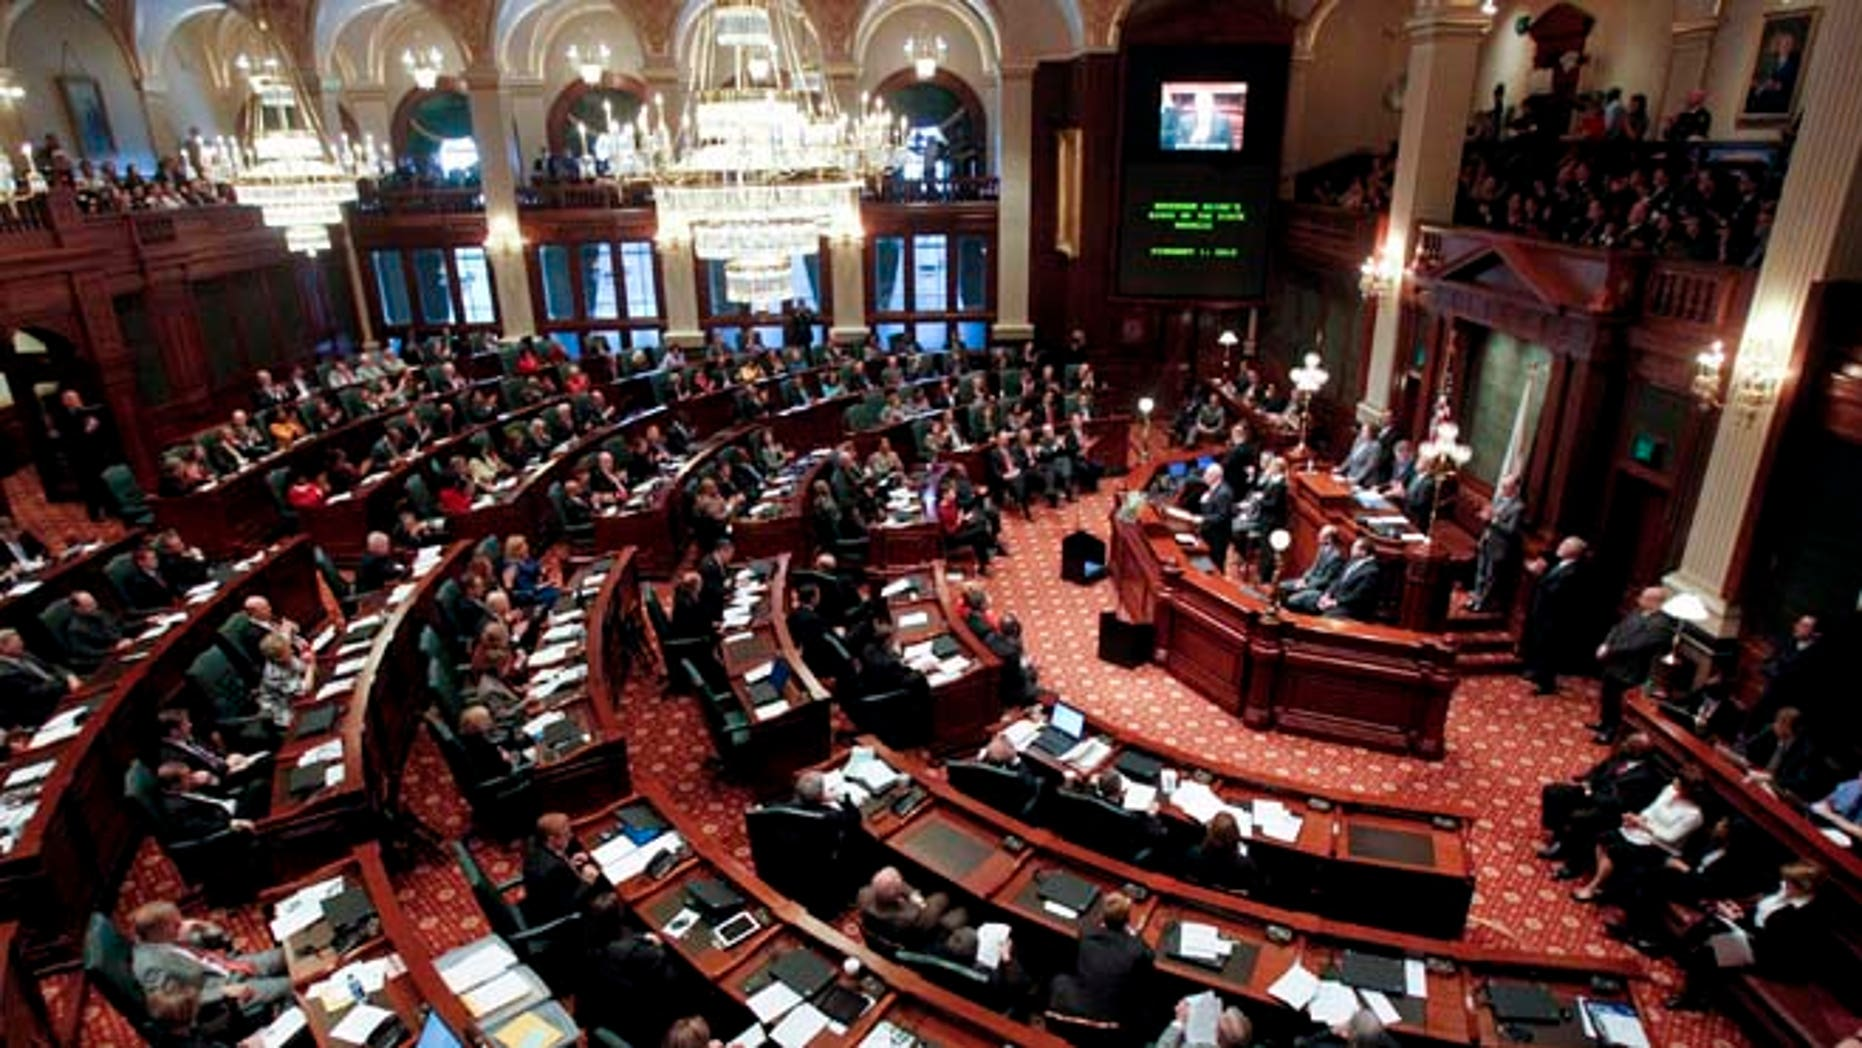 This Feb. 1, 2012 file photo shows the House Chambers of the Illinois State Capitol in Springfield, Illinois.